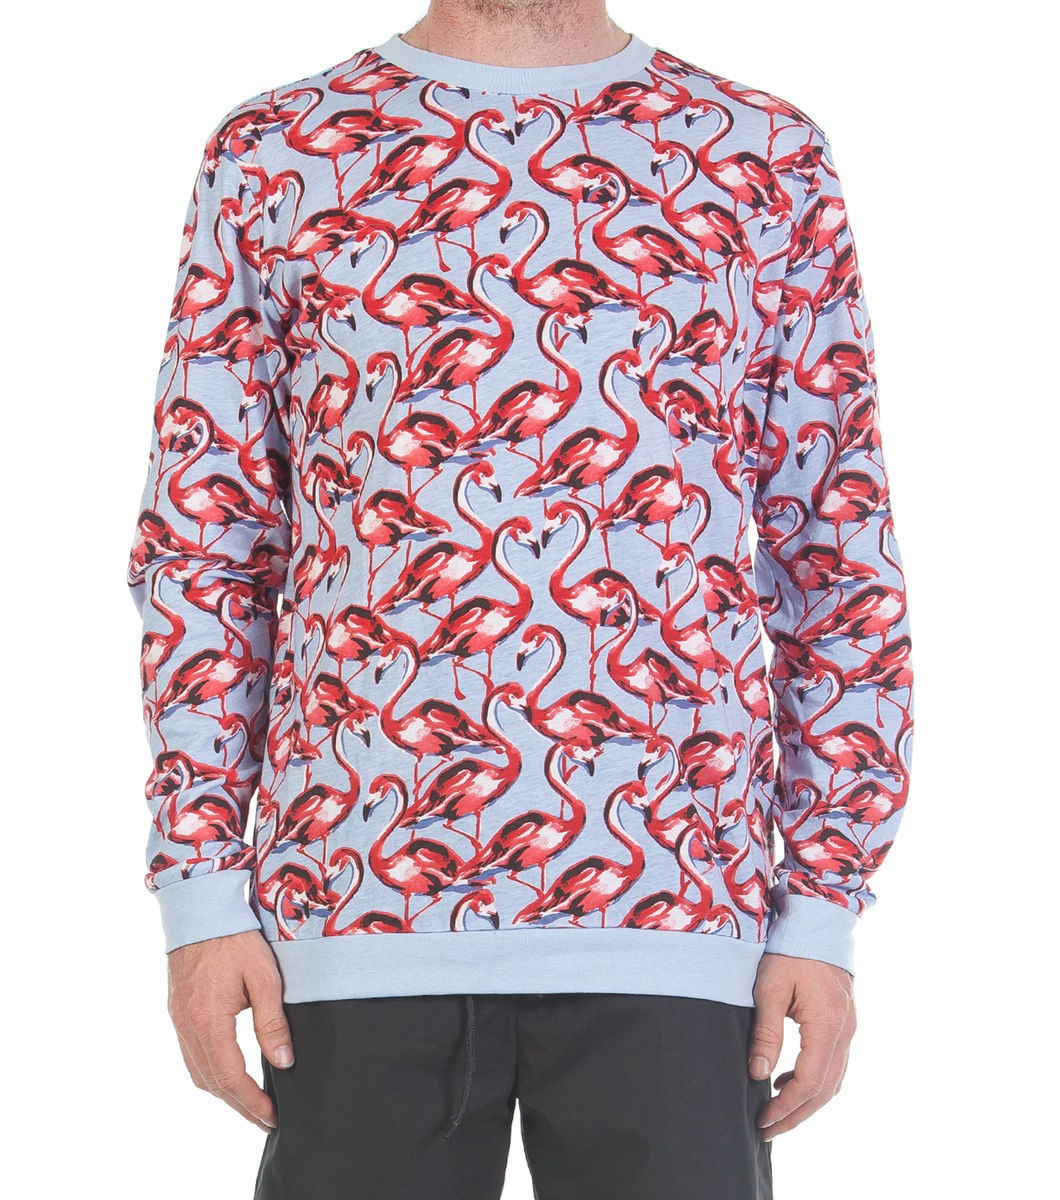 Flamingo LS Top